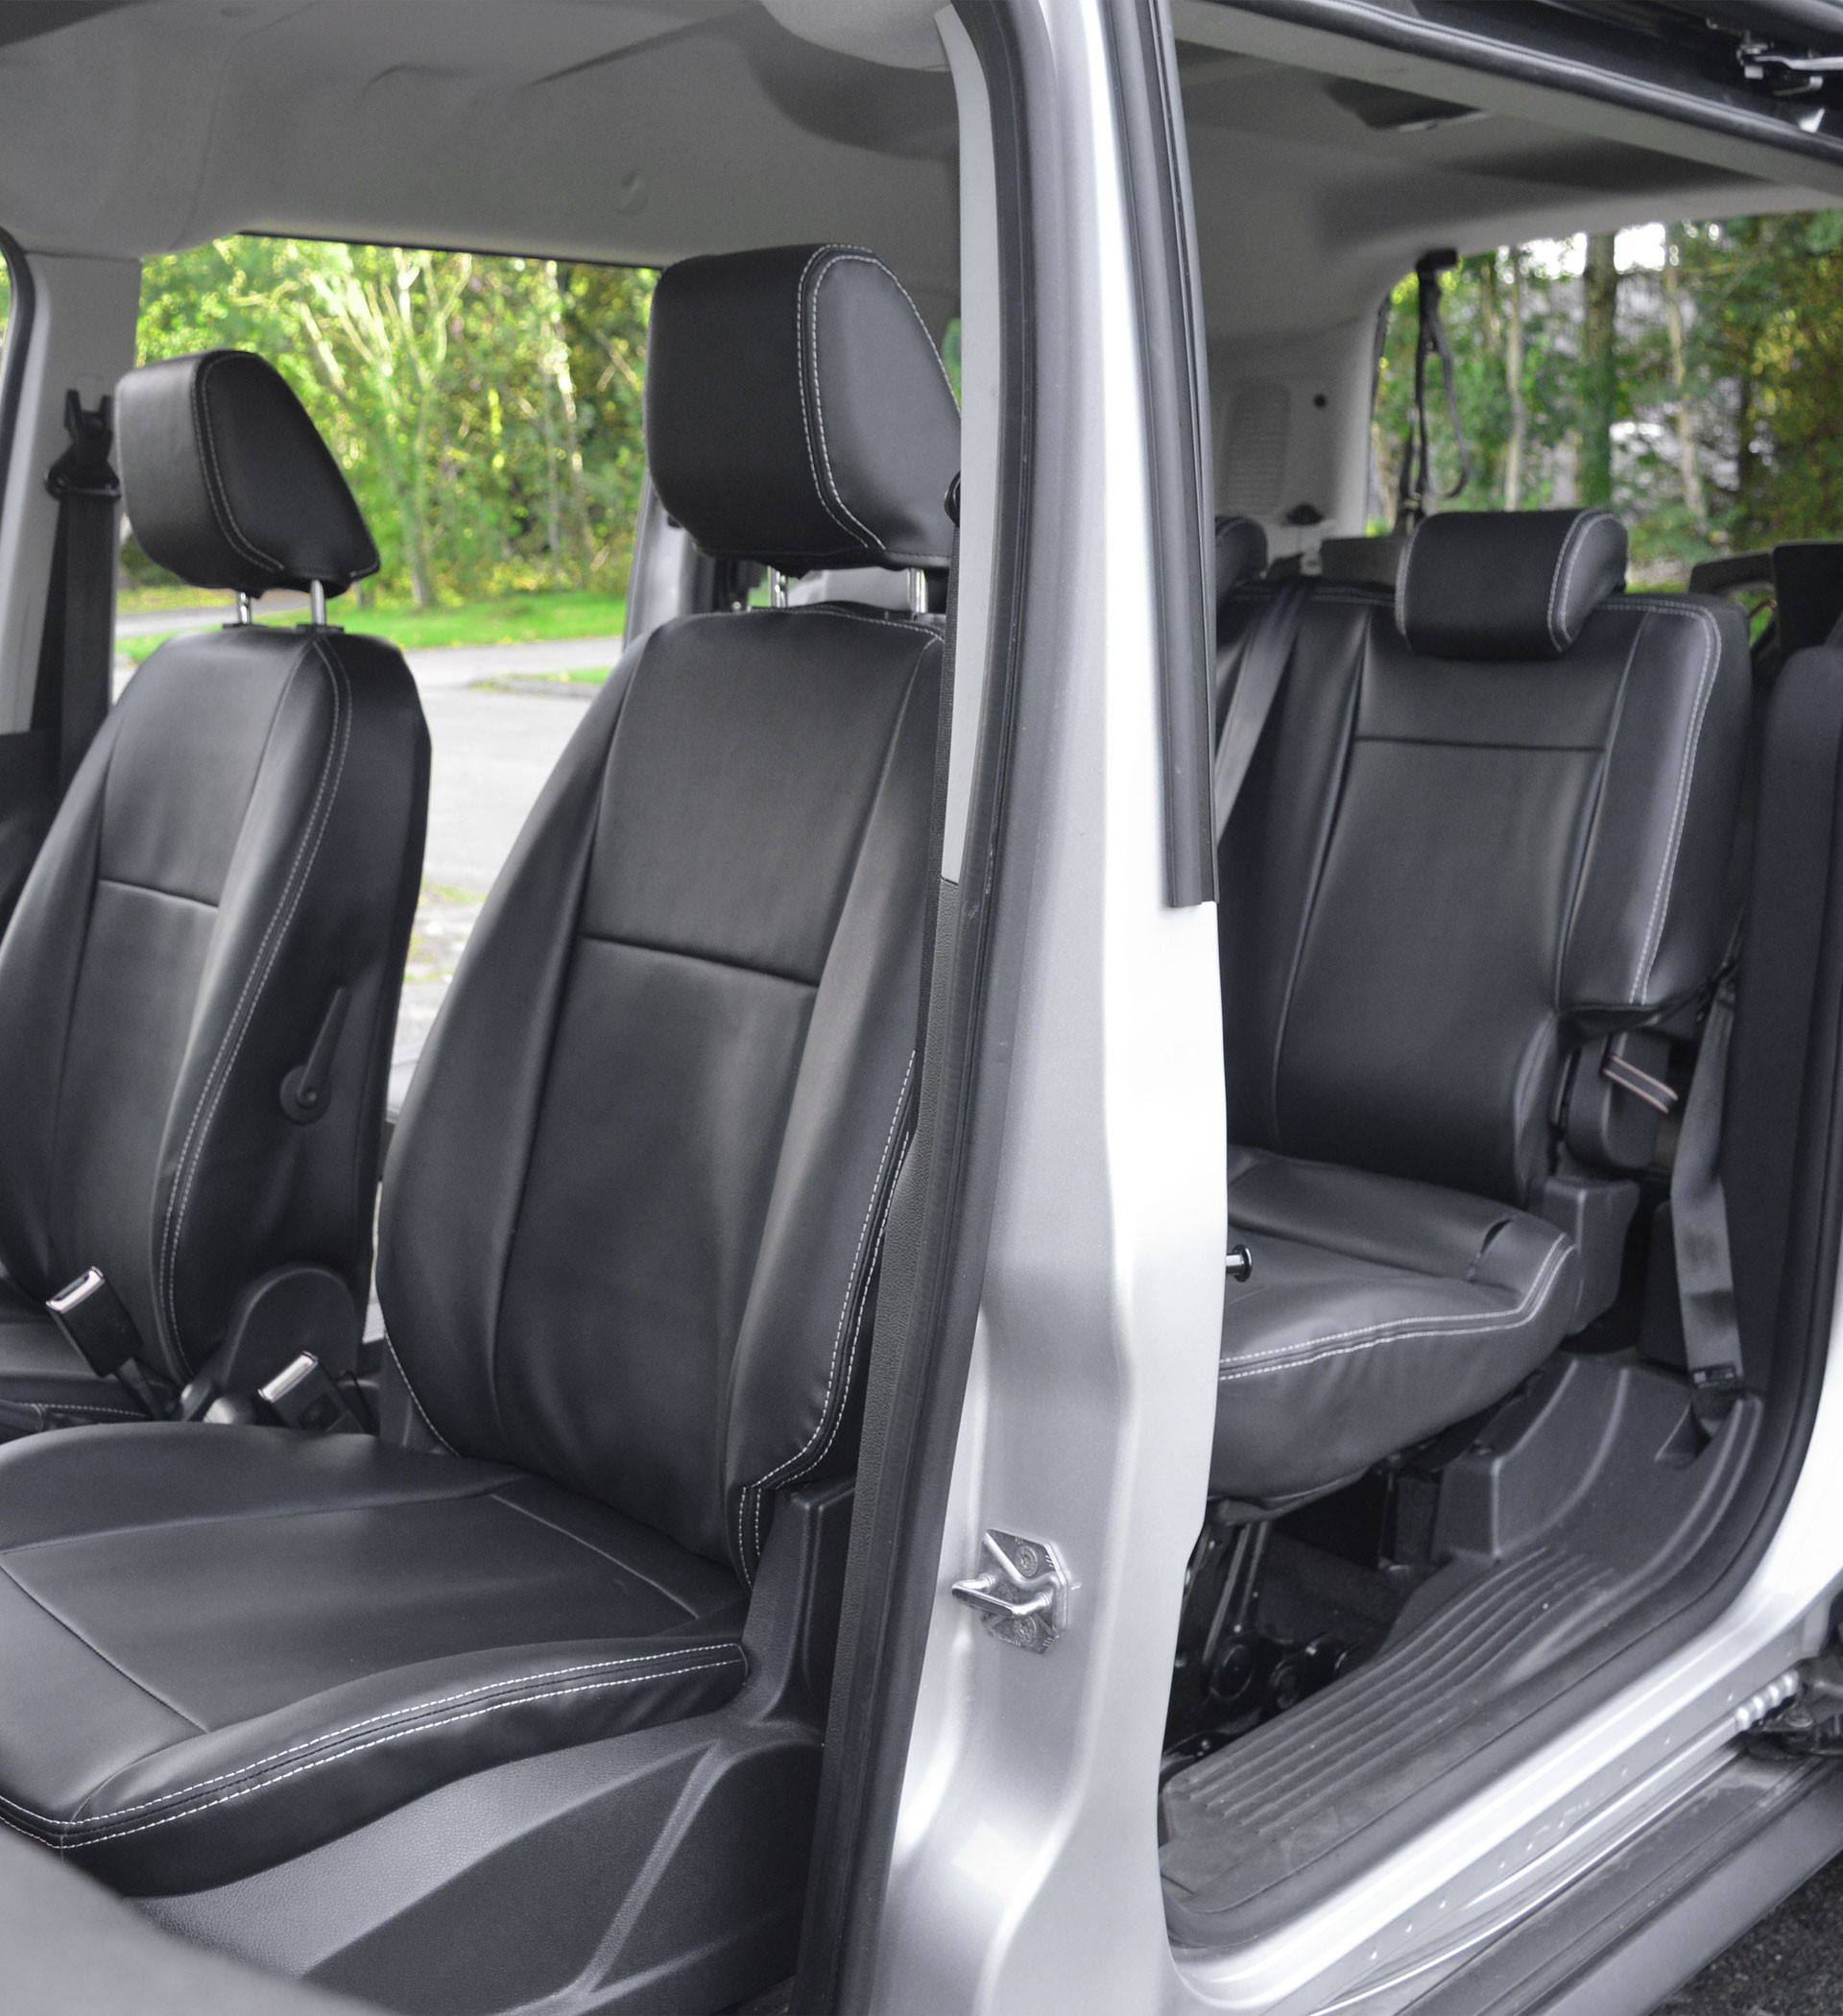 Ford Transit Connect Tourneo Tailored Seat Covers